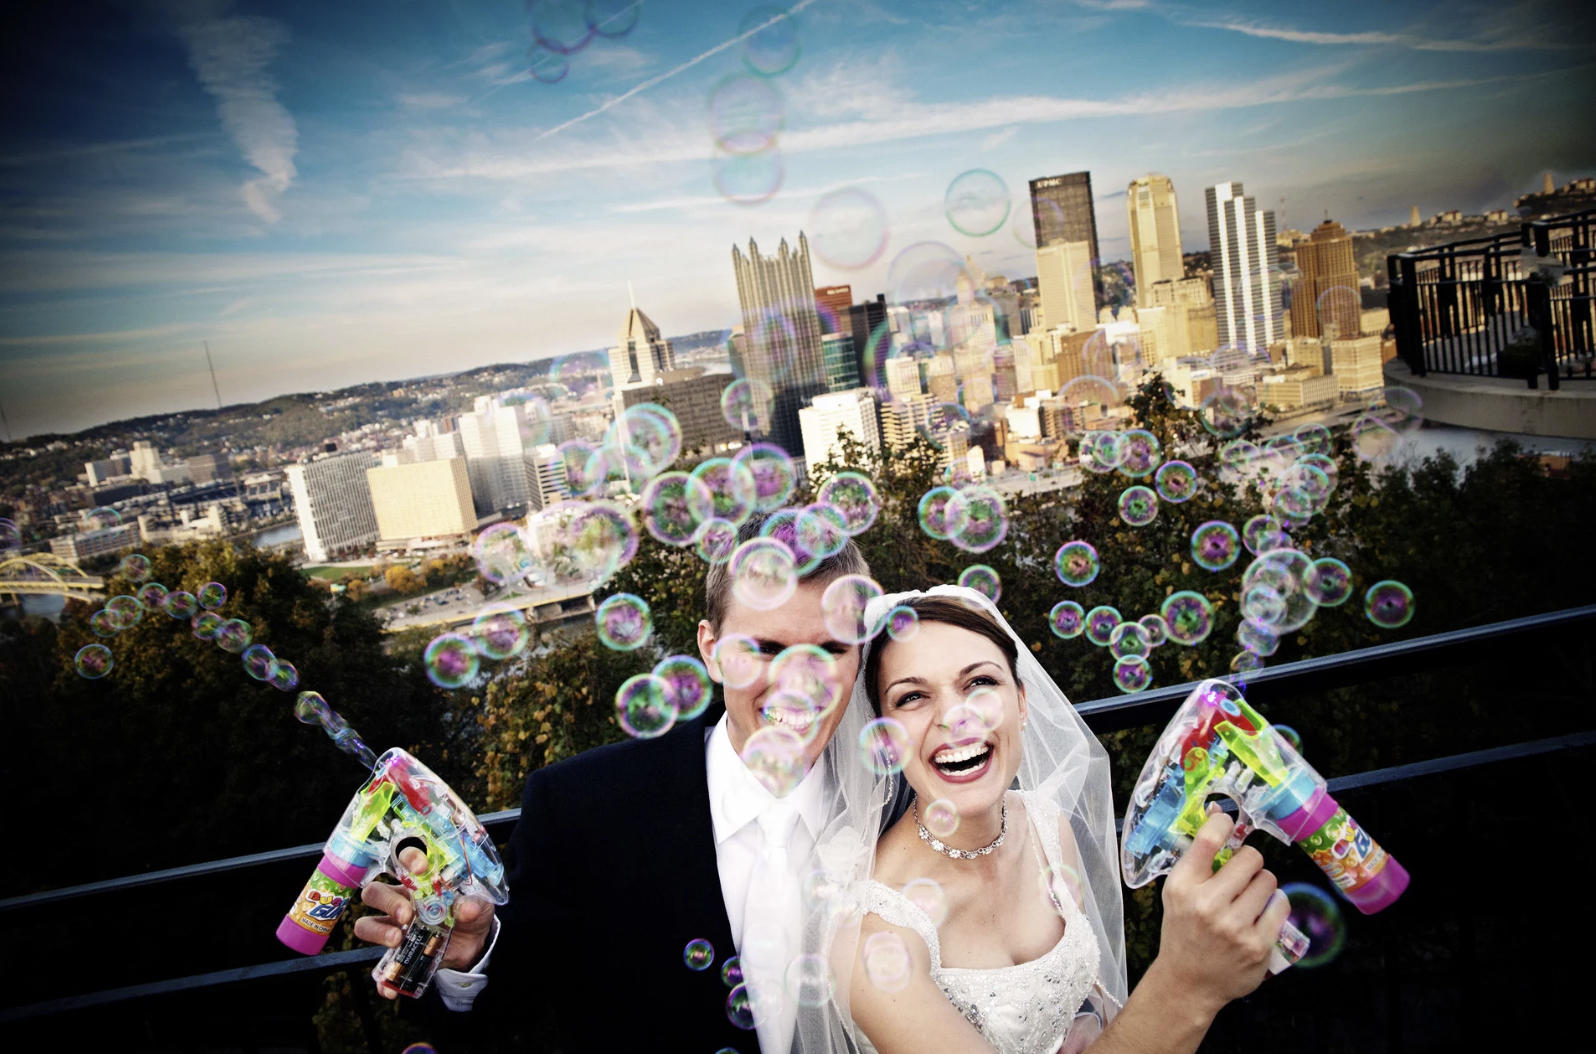 A wedding photo of a bride and groom blowing bubbles in the air after the ceremony, both overjoyed!